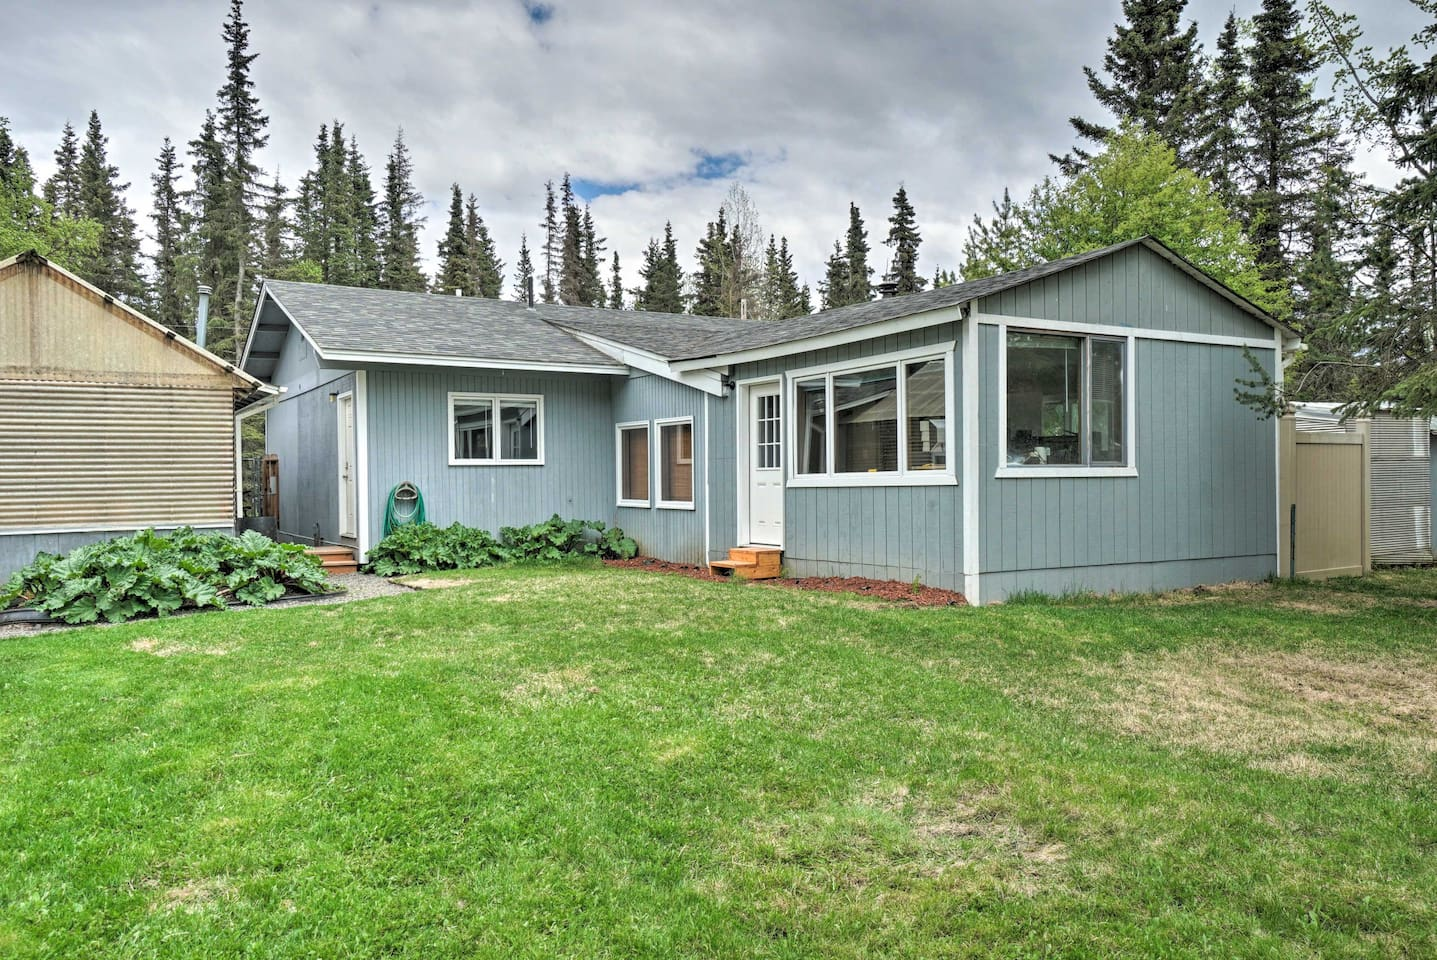 Book a trip to this 1-bedroom, 1-bathroom vacation rental home in Kenai!